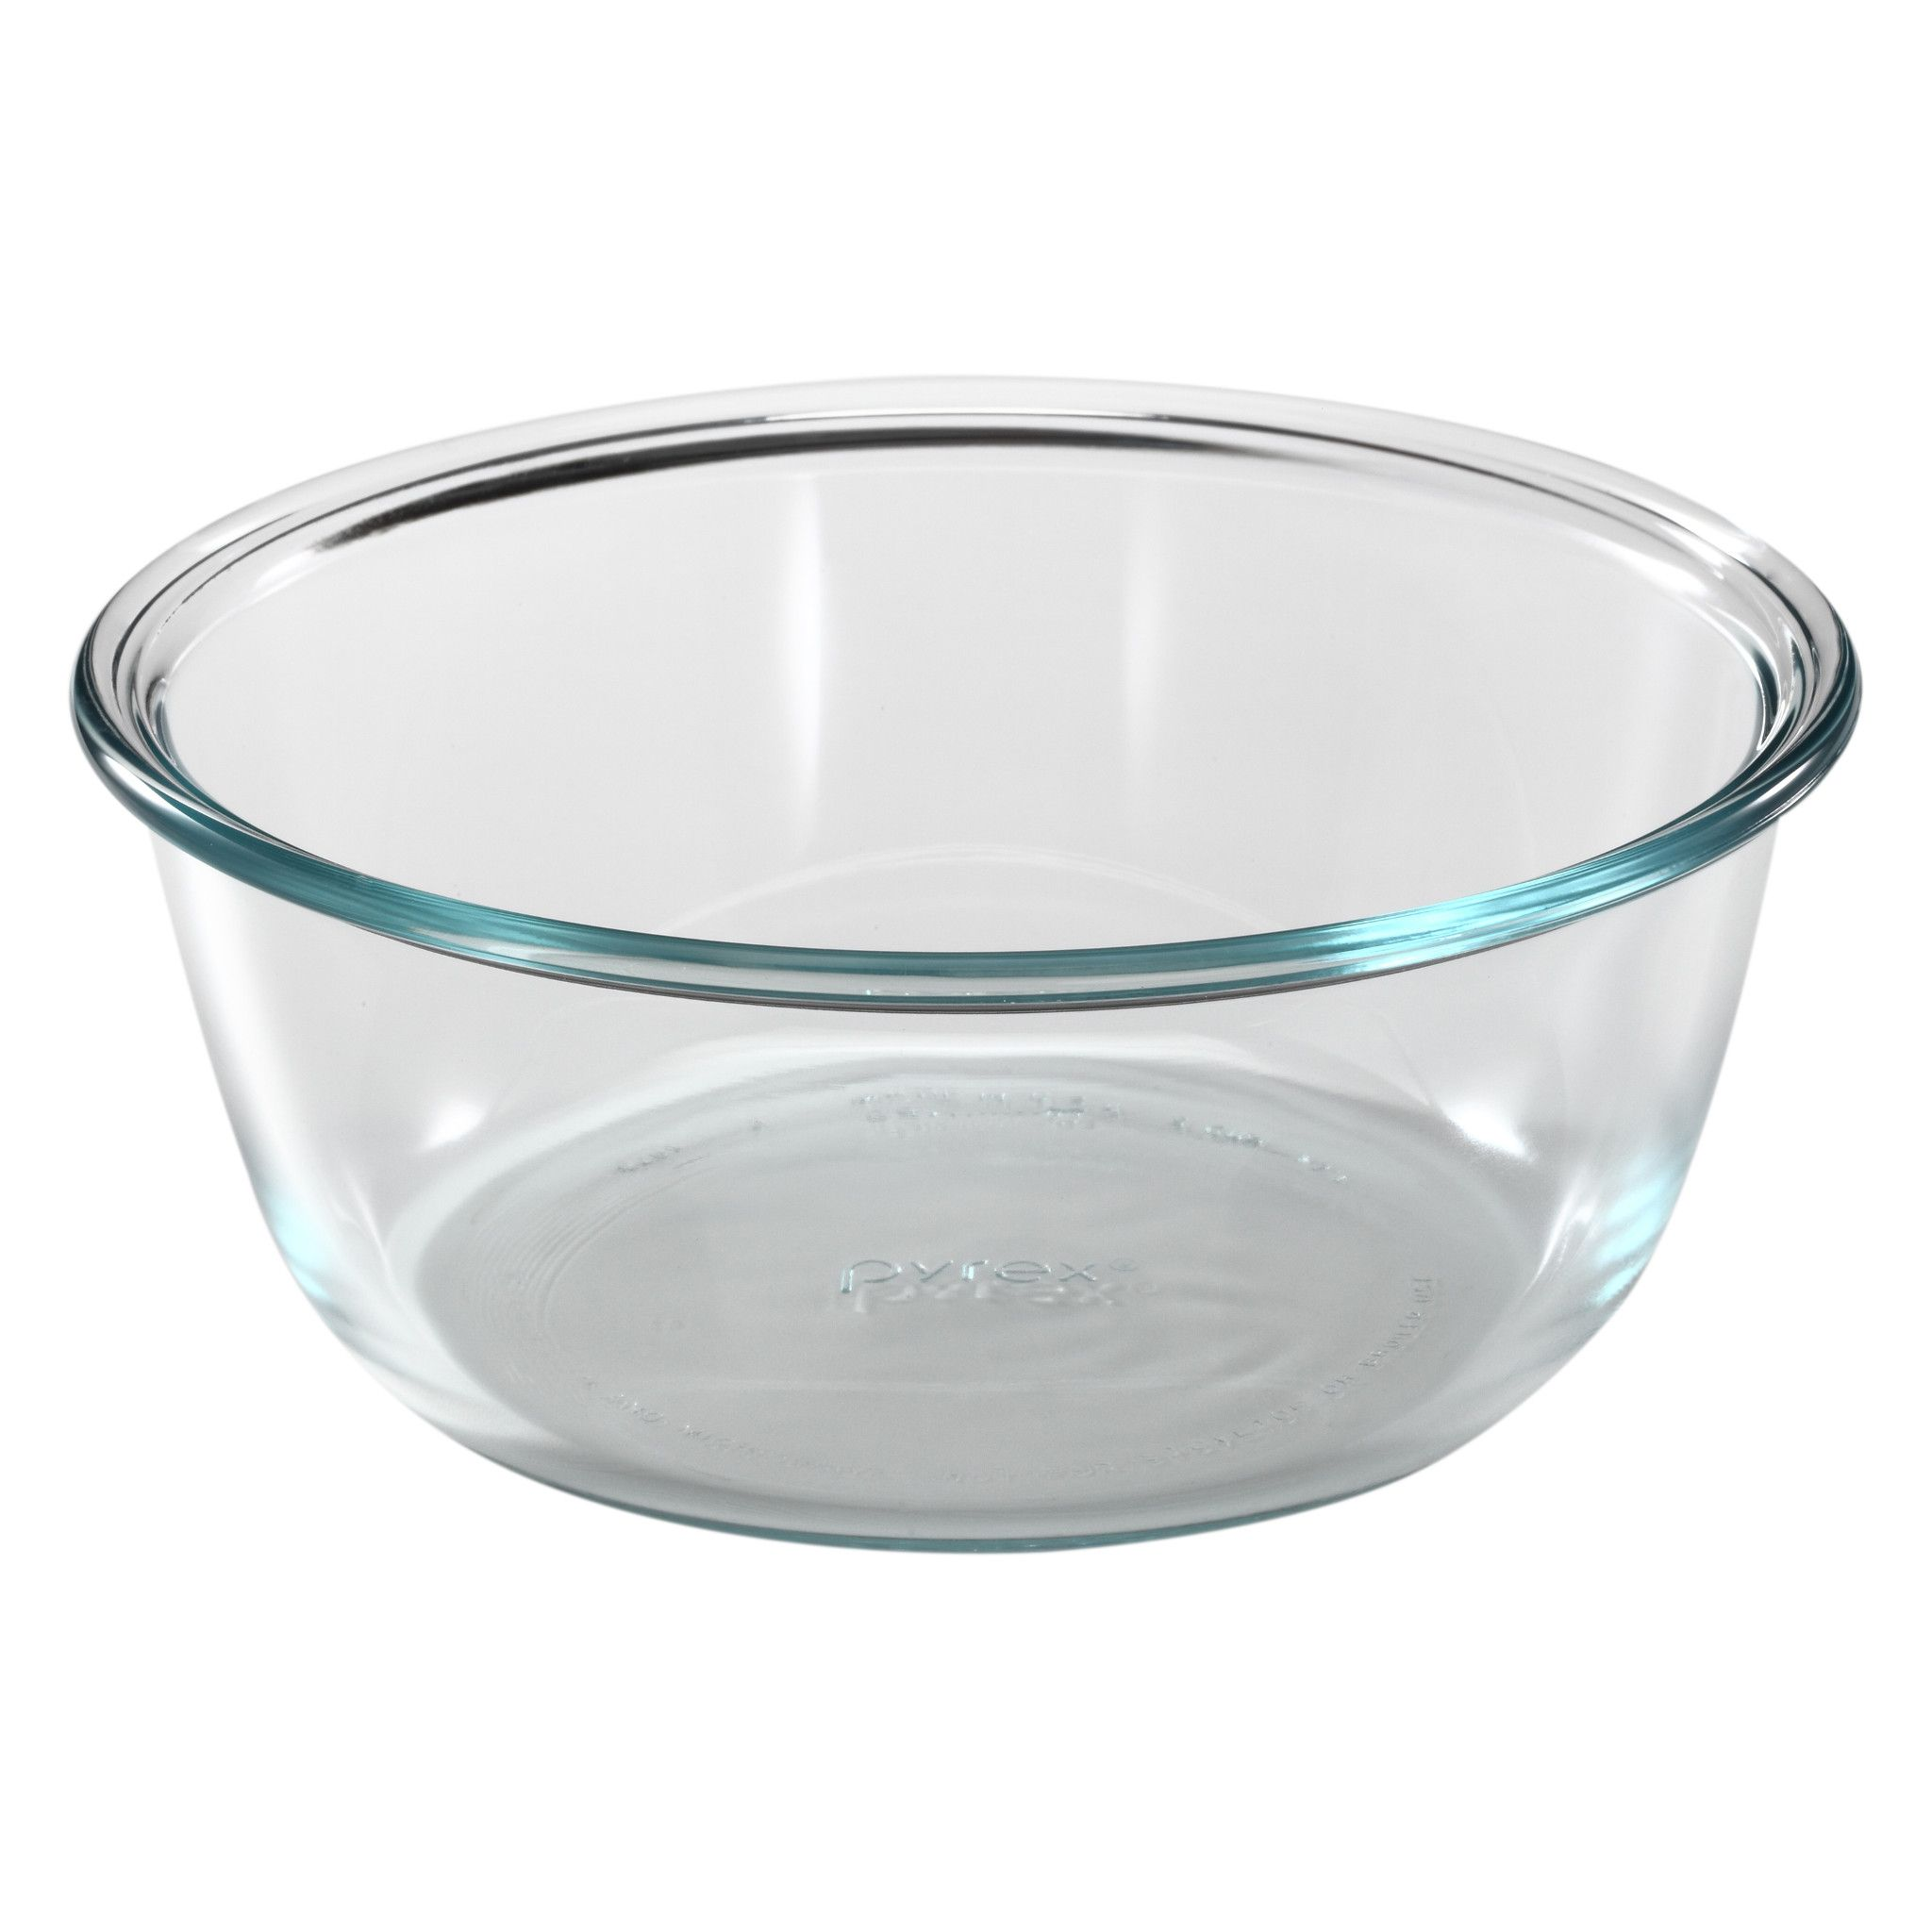 Pyrex Pro 5 Cup Round Dish